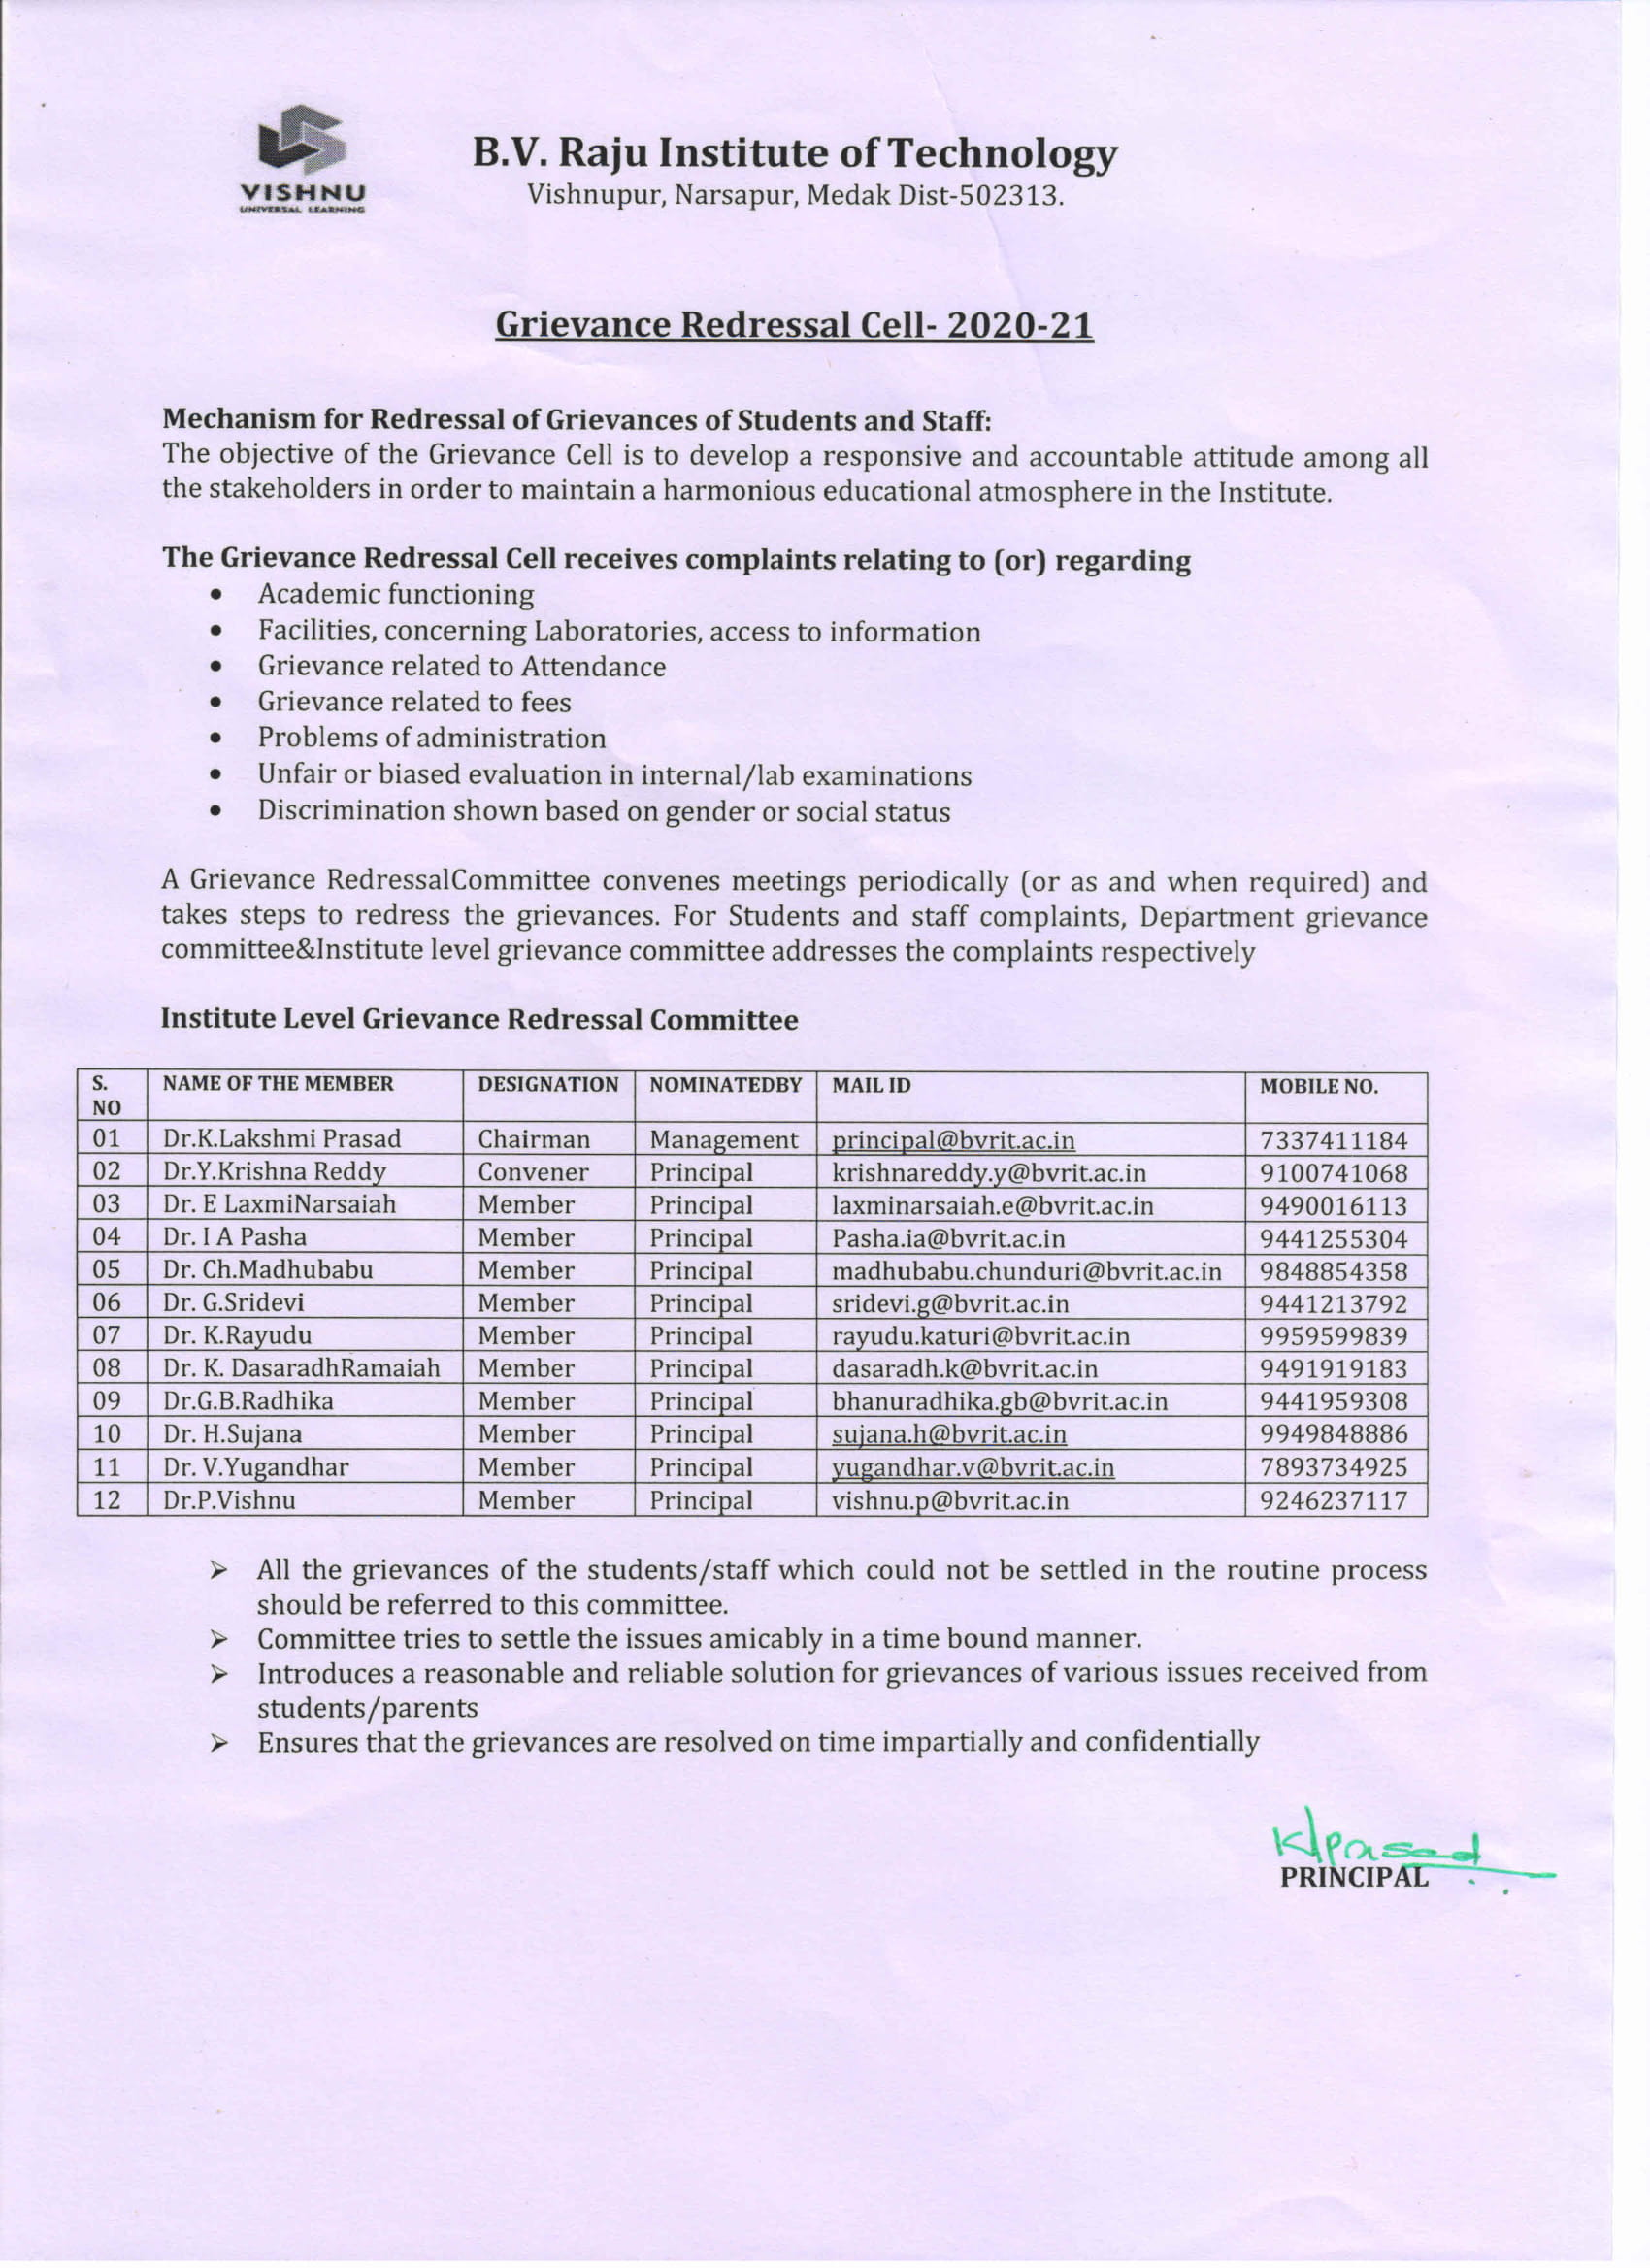 Grieviance Redressal committee and obudsman  1